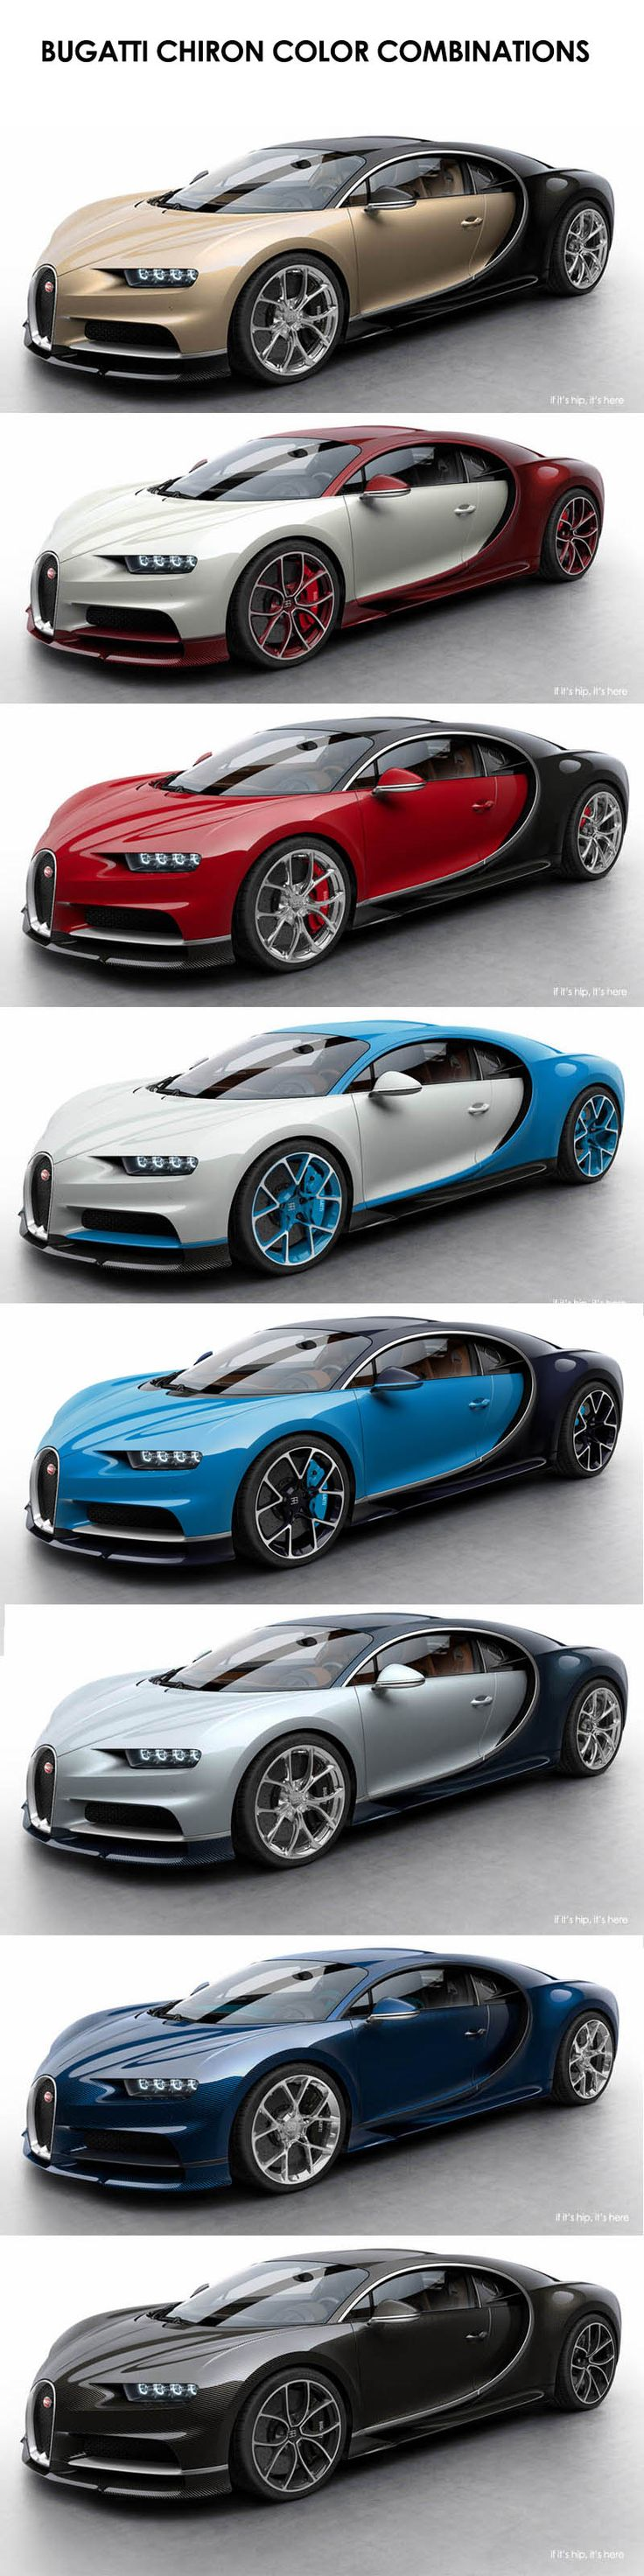 The $2.6 million dollar Bugatti Chiron Color Combinations (The 1st & the next to the last, thank you! )